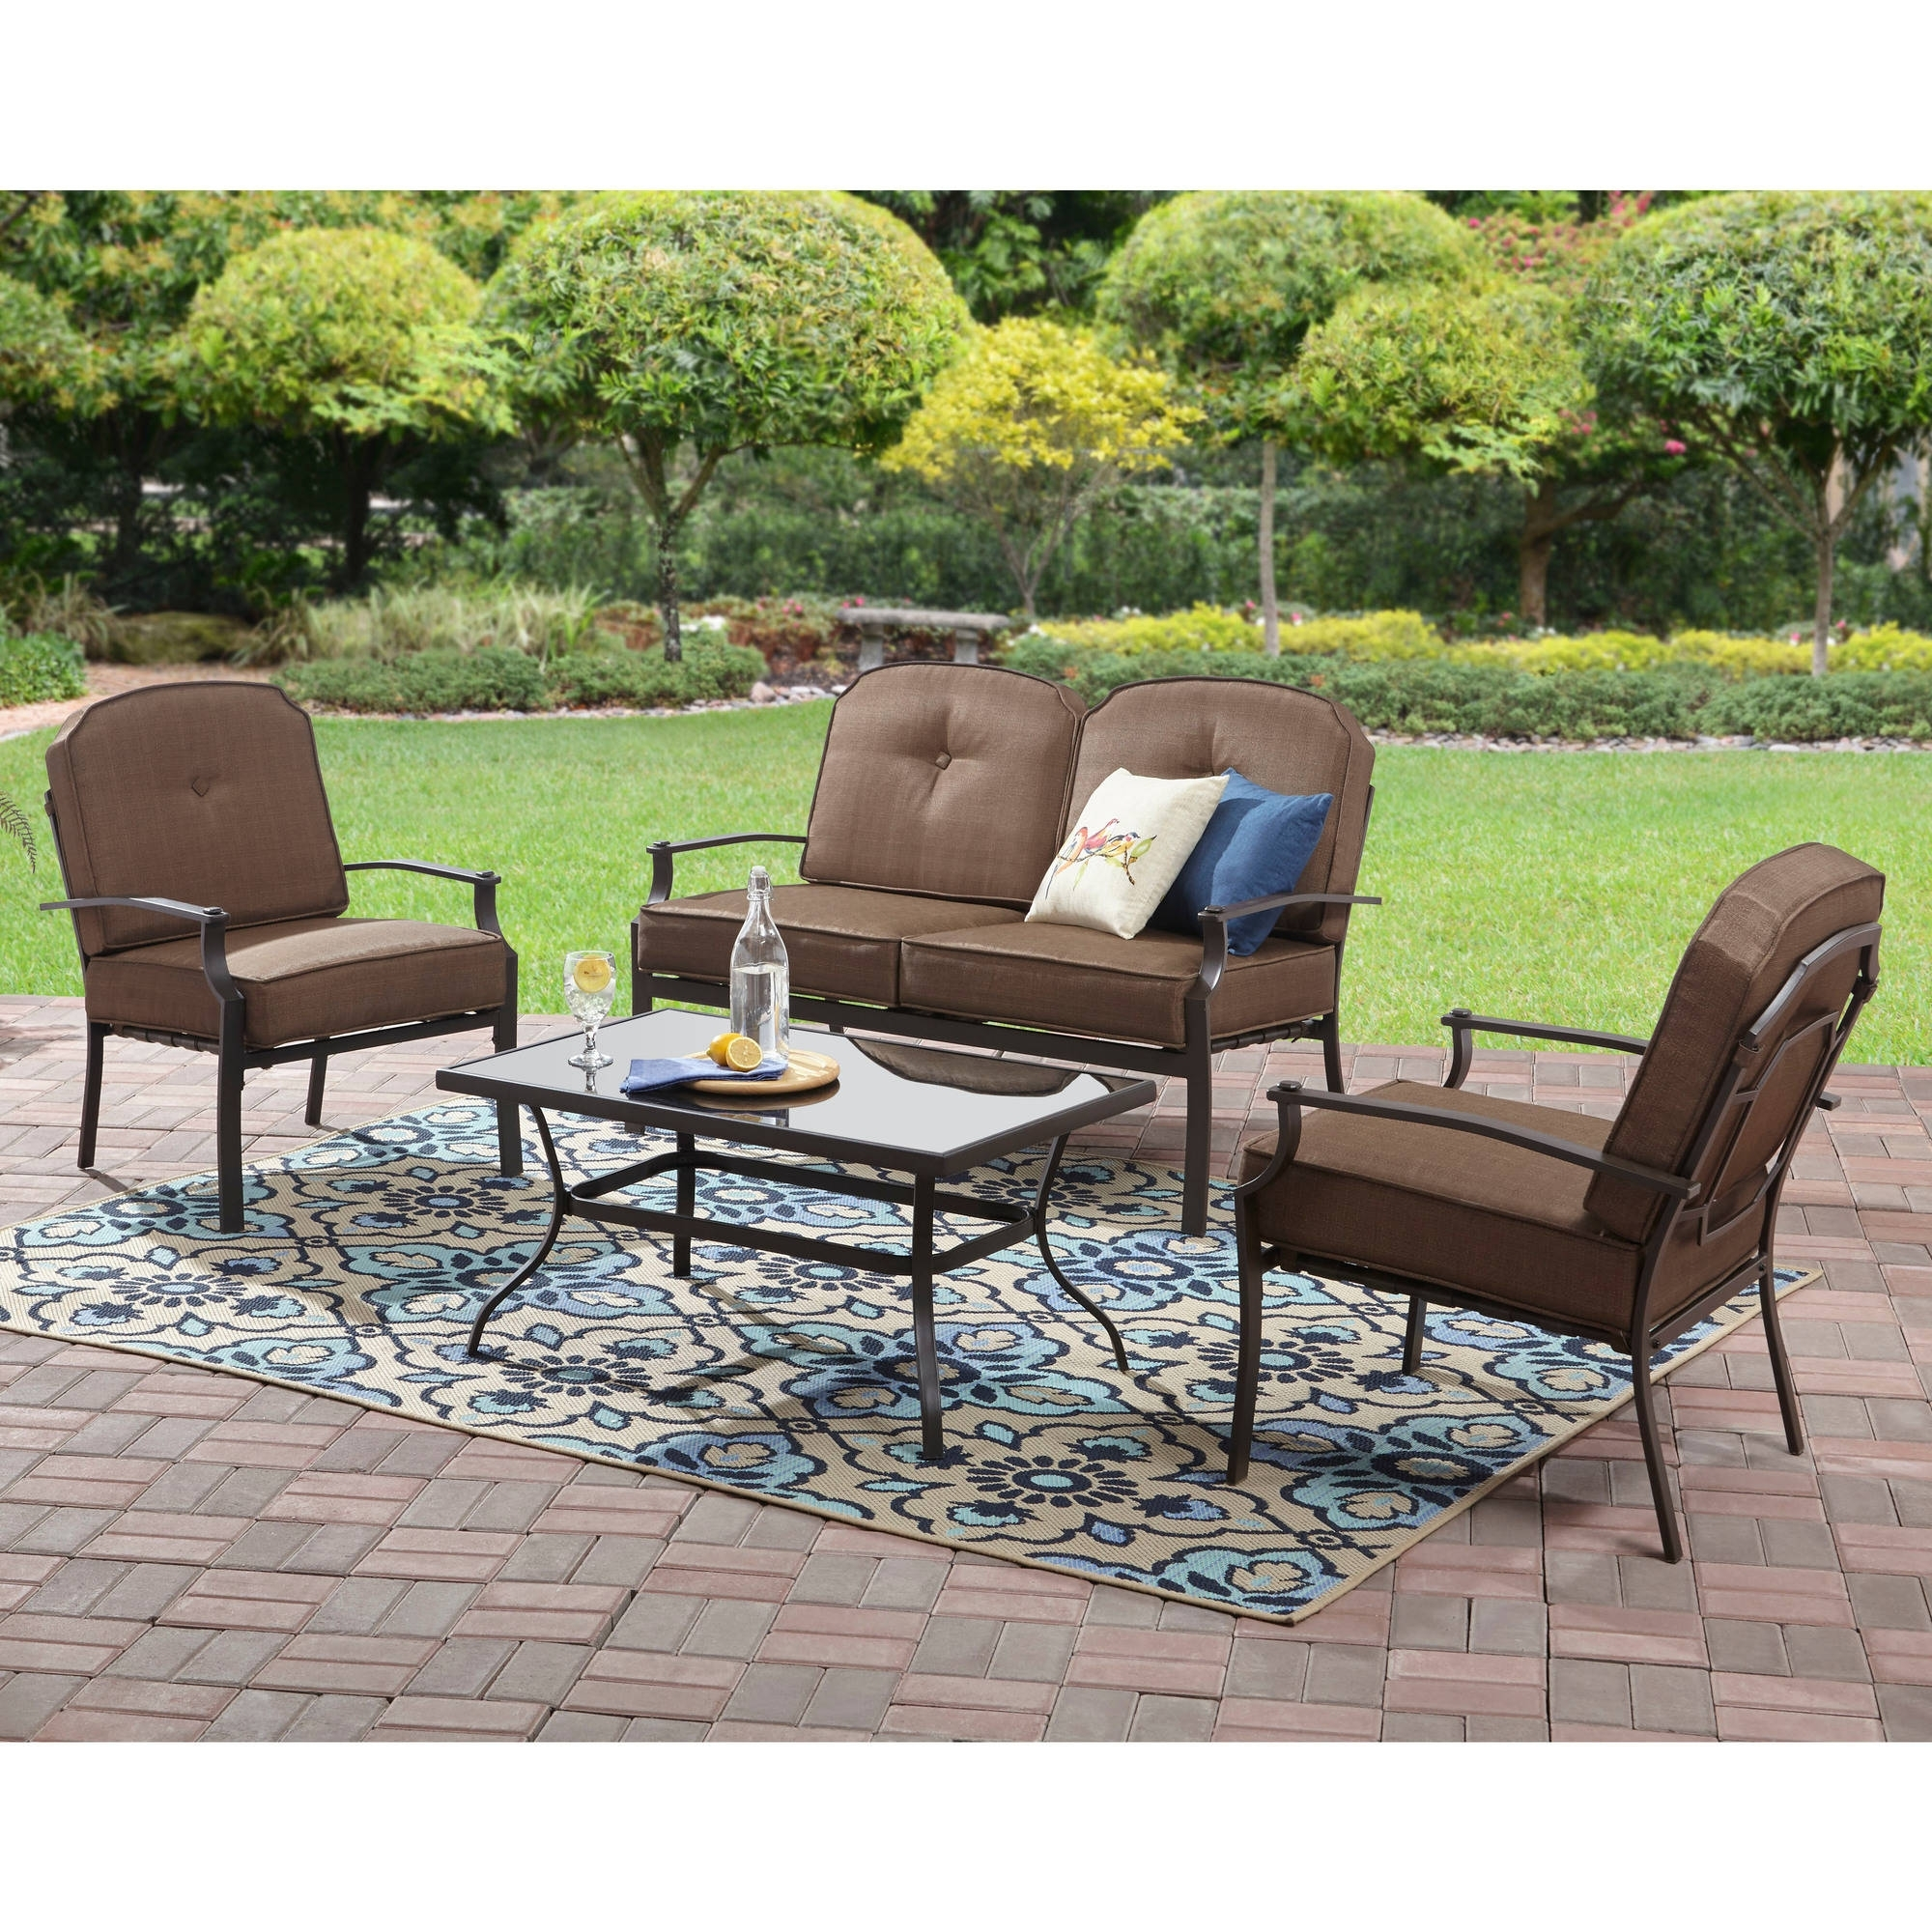 Well Known Metal Patio Conversation Sets Pertaining To Mainstays Wentworth 4 Piece Patio Conversation Set, Seats  (View 14 of 15)